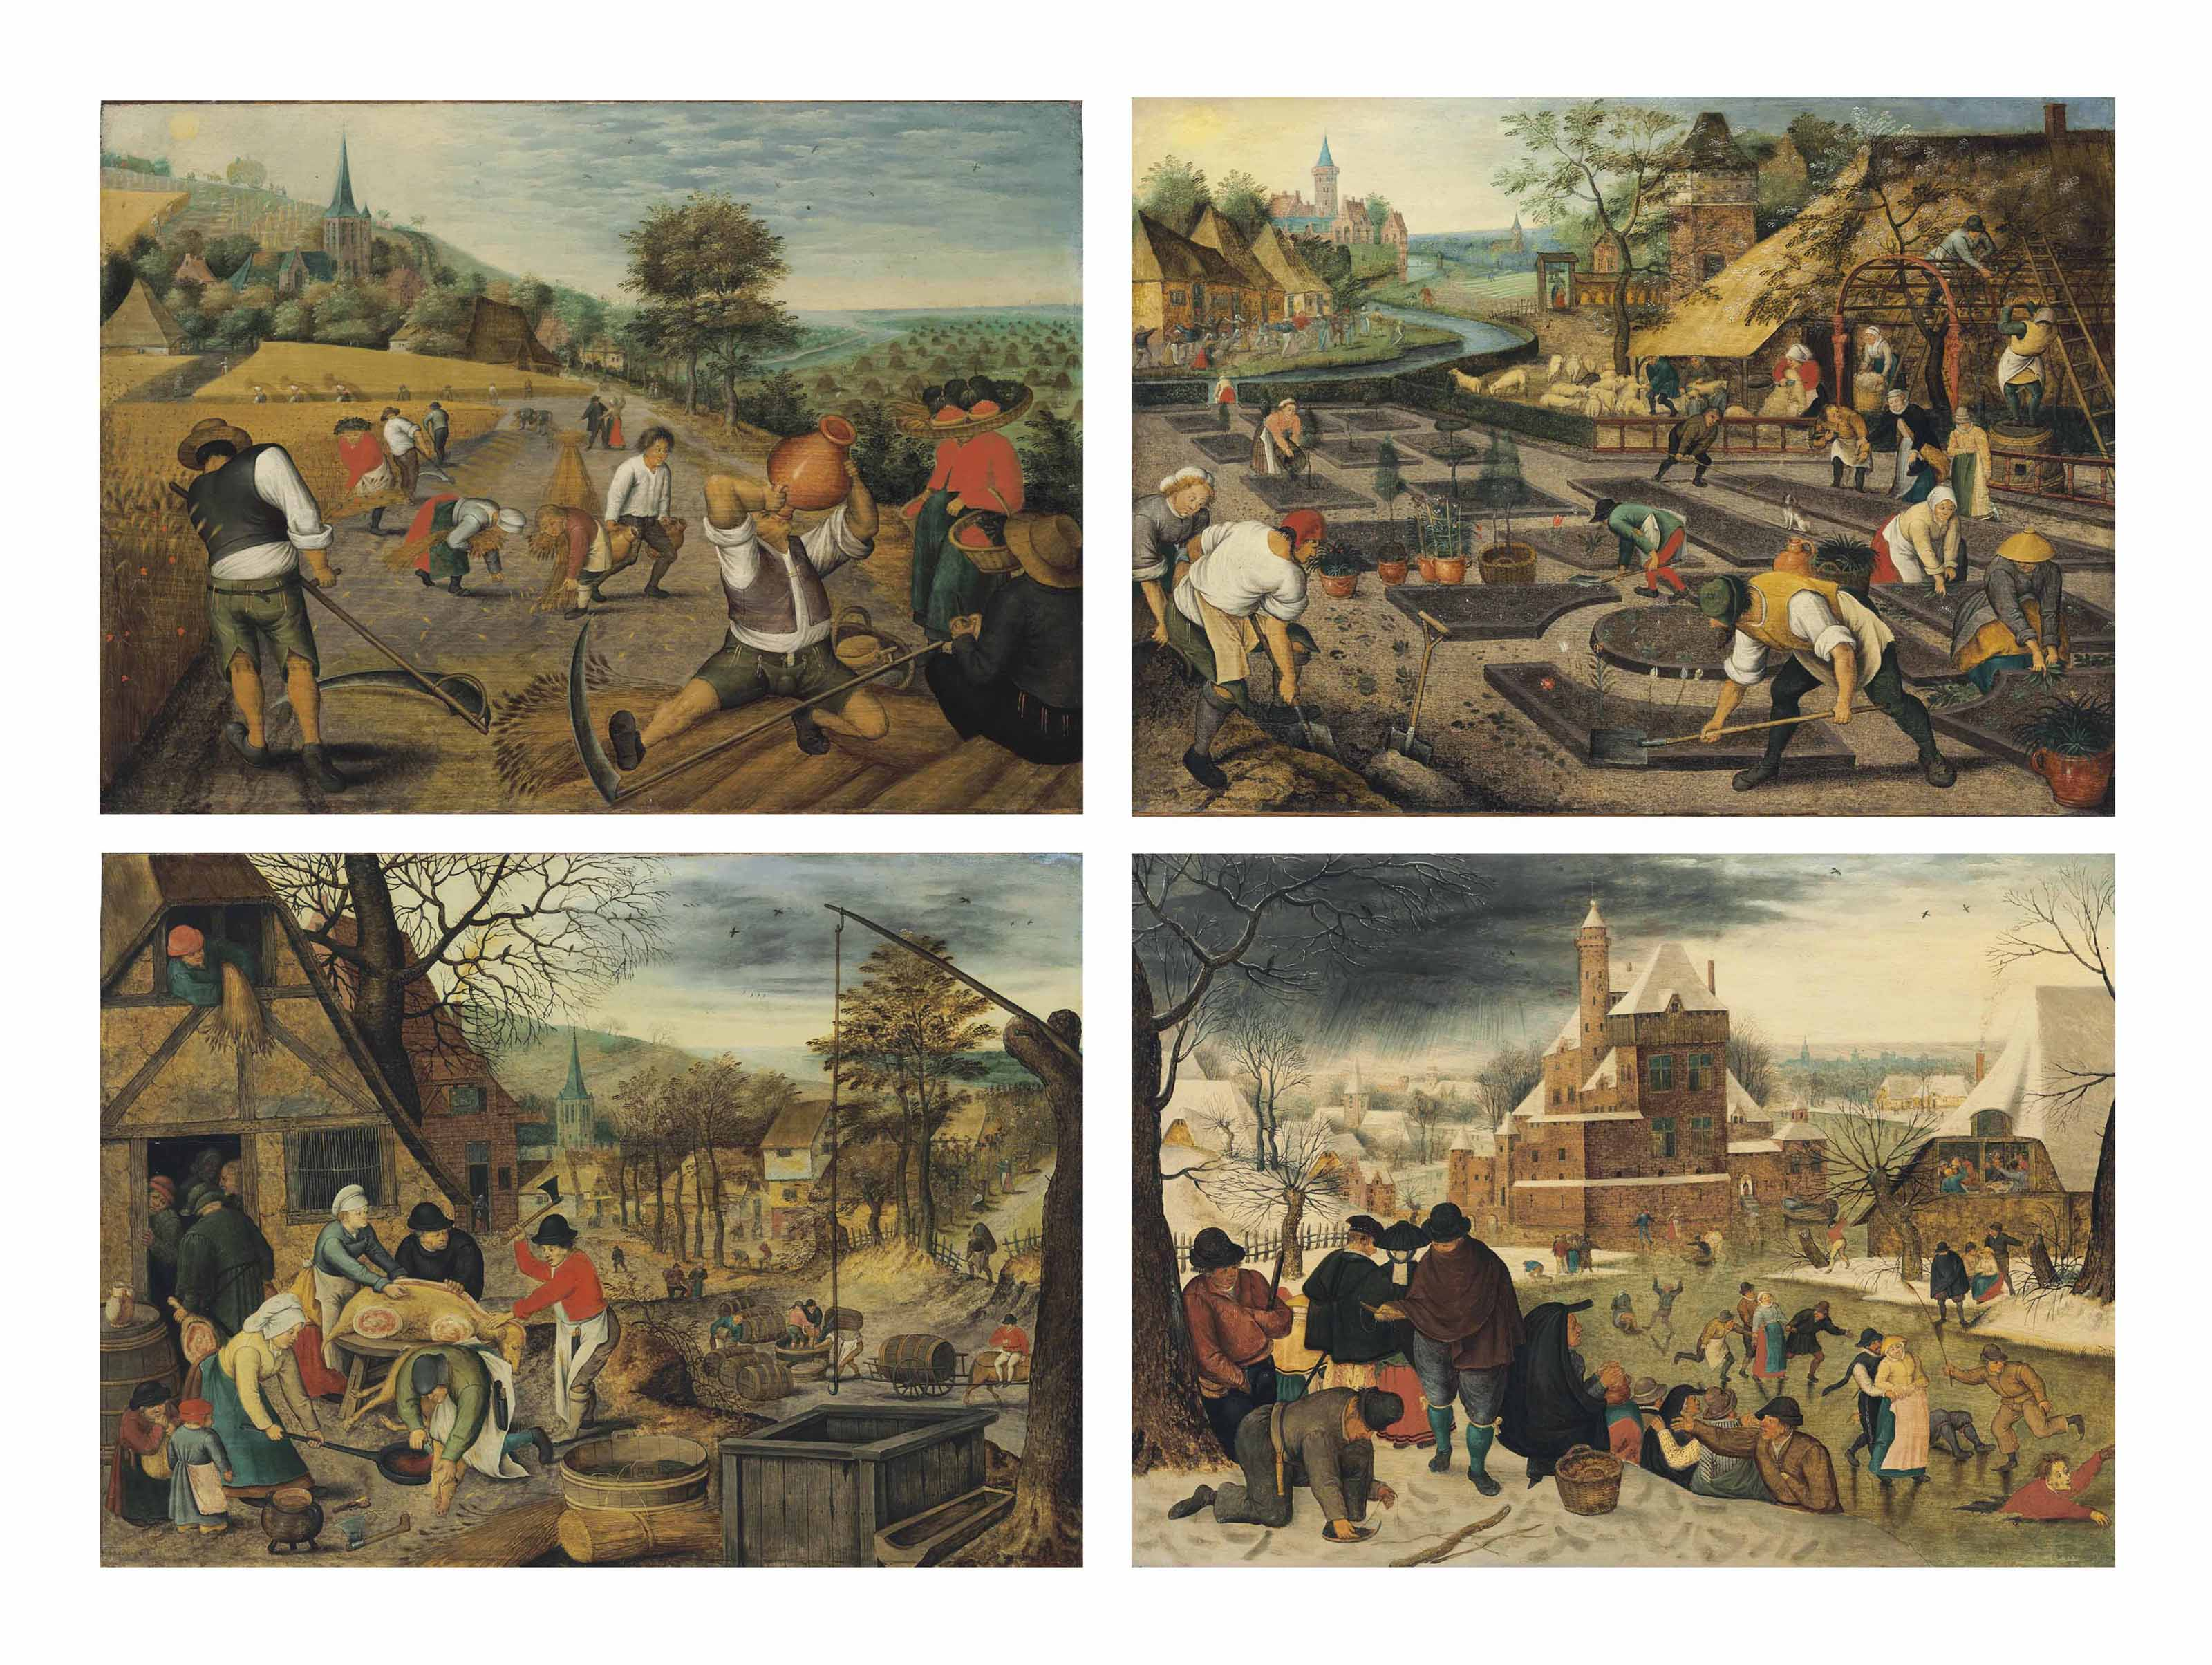 The Four Seasons: Spring; Summer; Autumn; and Winter